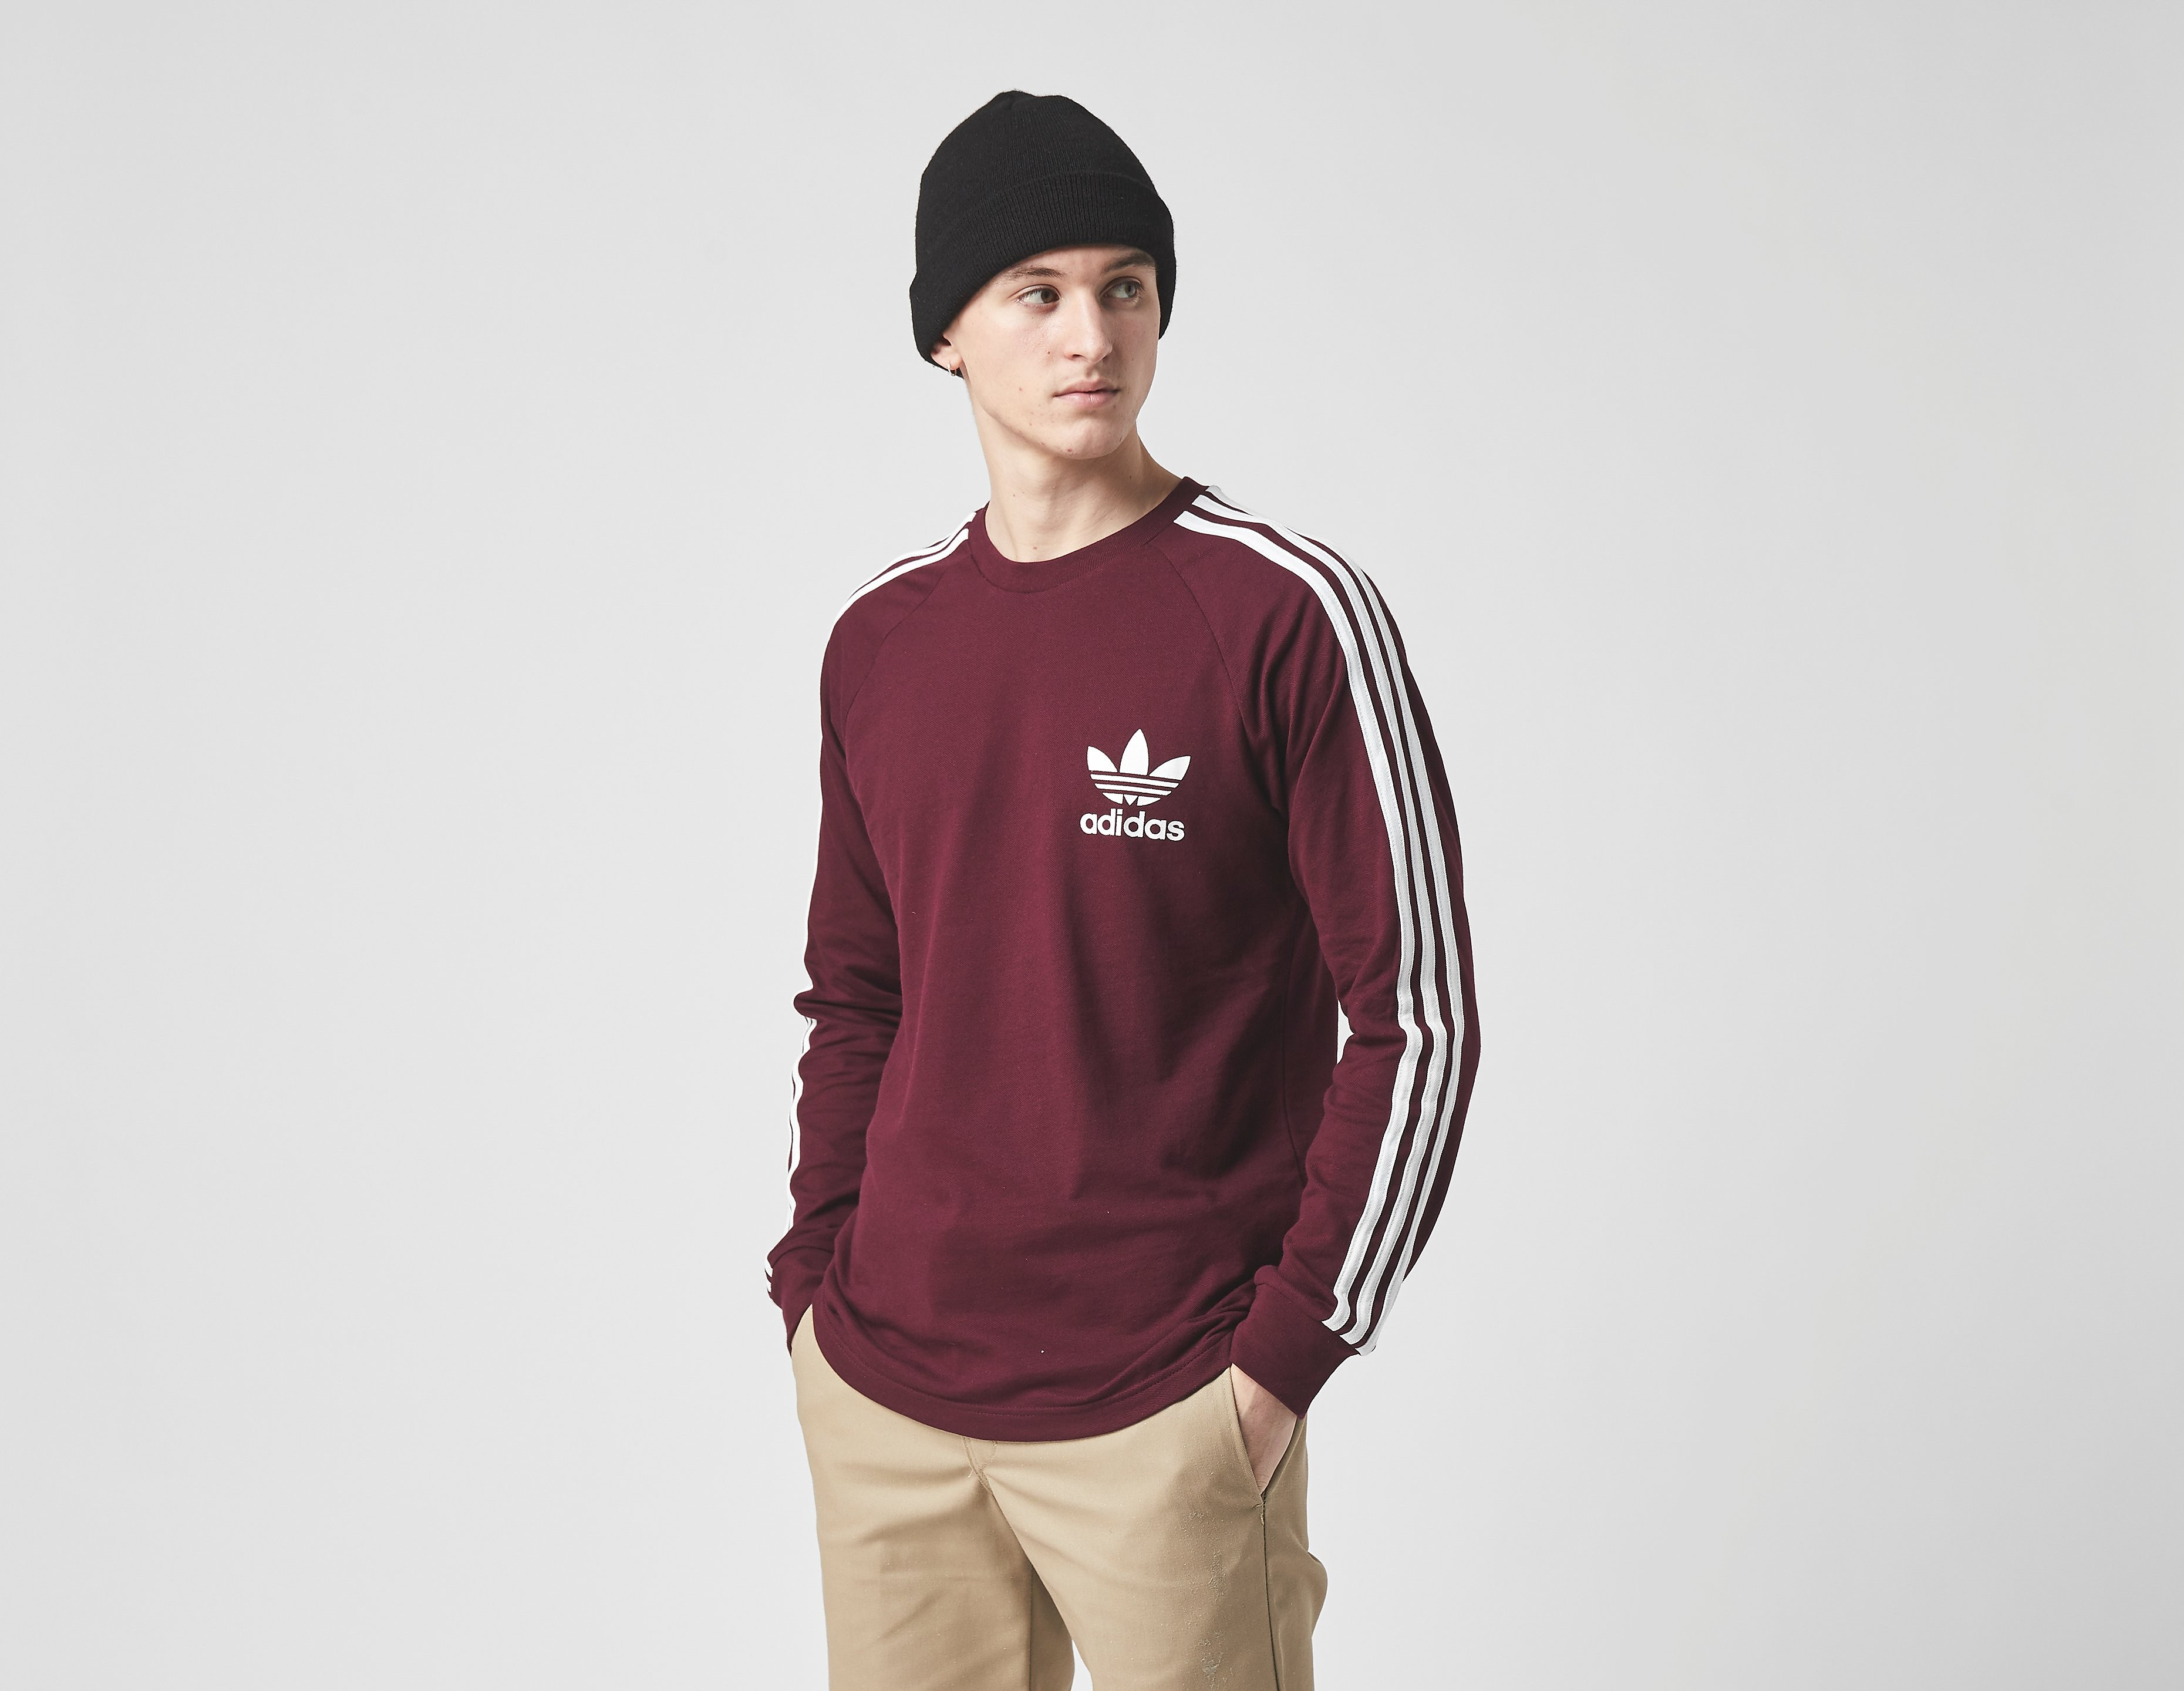 adidas Originals Pique Cali Long Sleeve